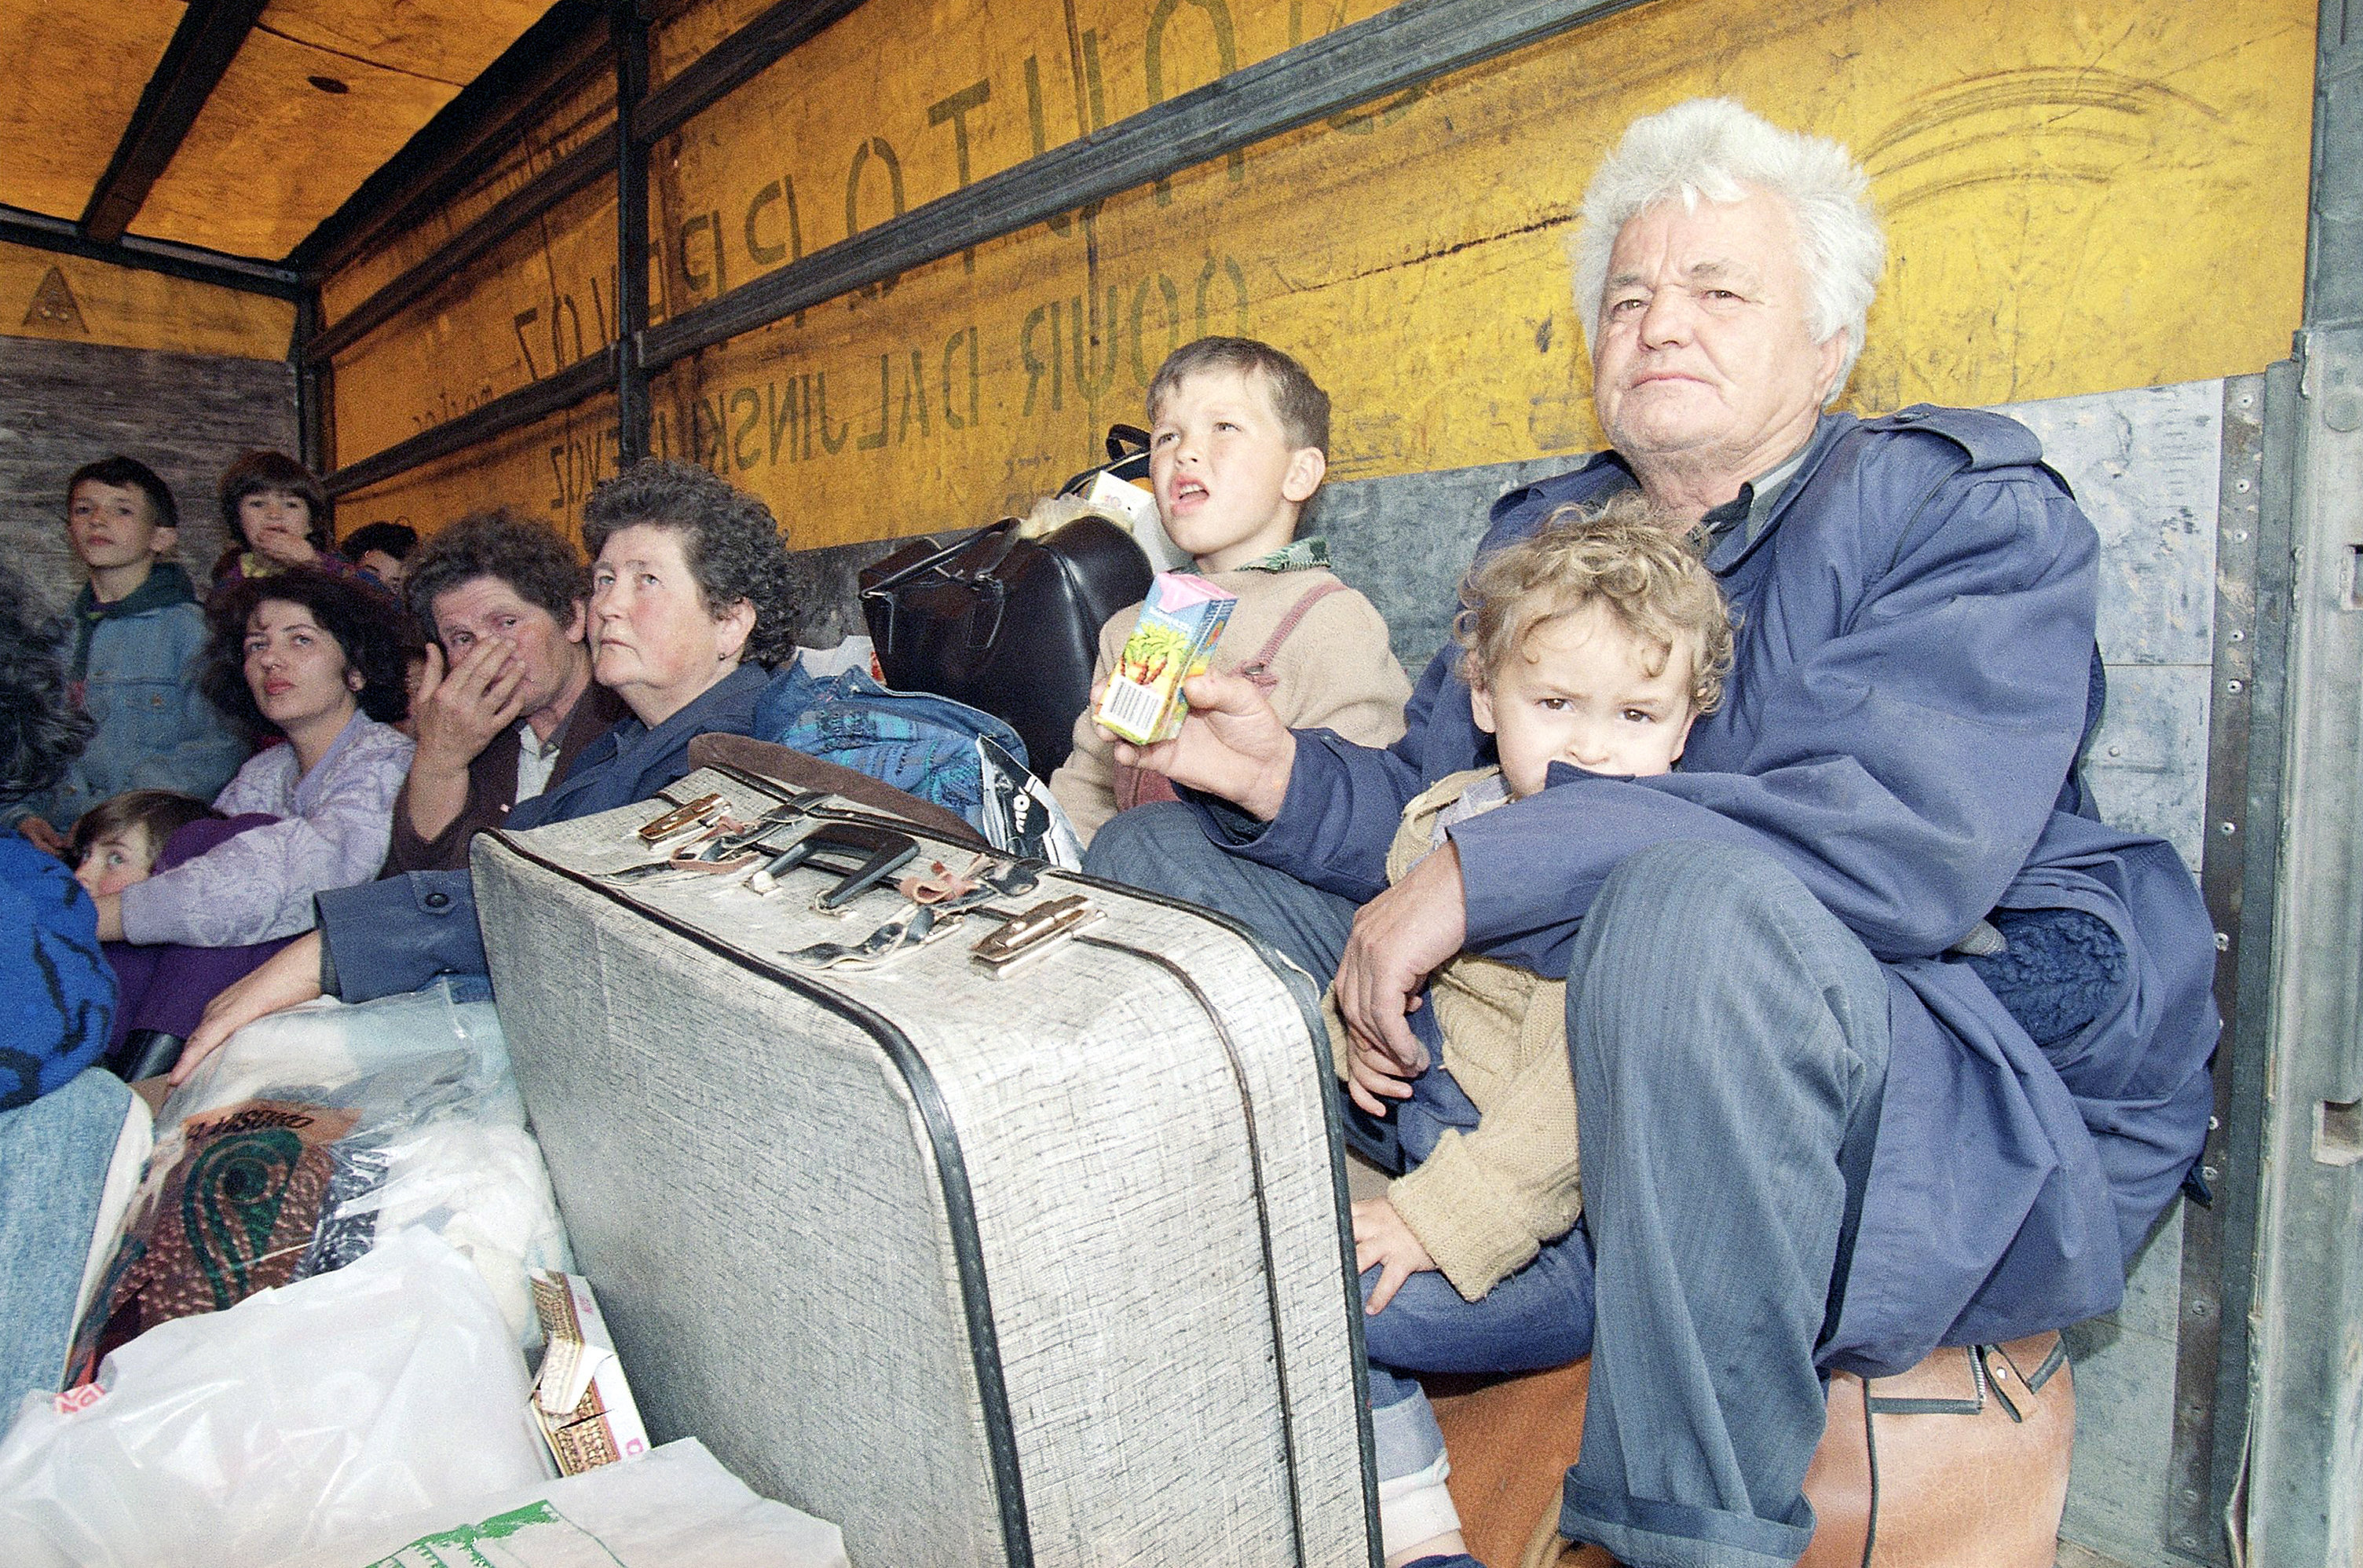 Bosnian refugees from Siroki Brijeg, on the frontline close to Mostar in Bosnia-Herzegovina, sit in a truck along with their belongings waiting to embark on a ferry to the island of Brace, in Split's harbor, Croatia on April 9, 1992.